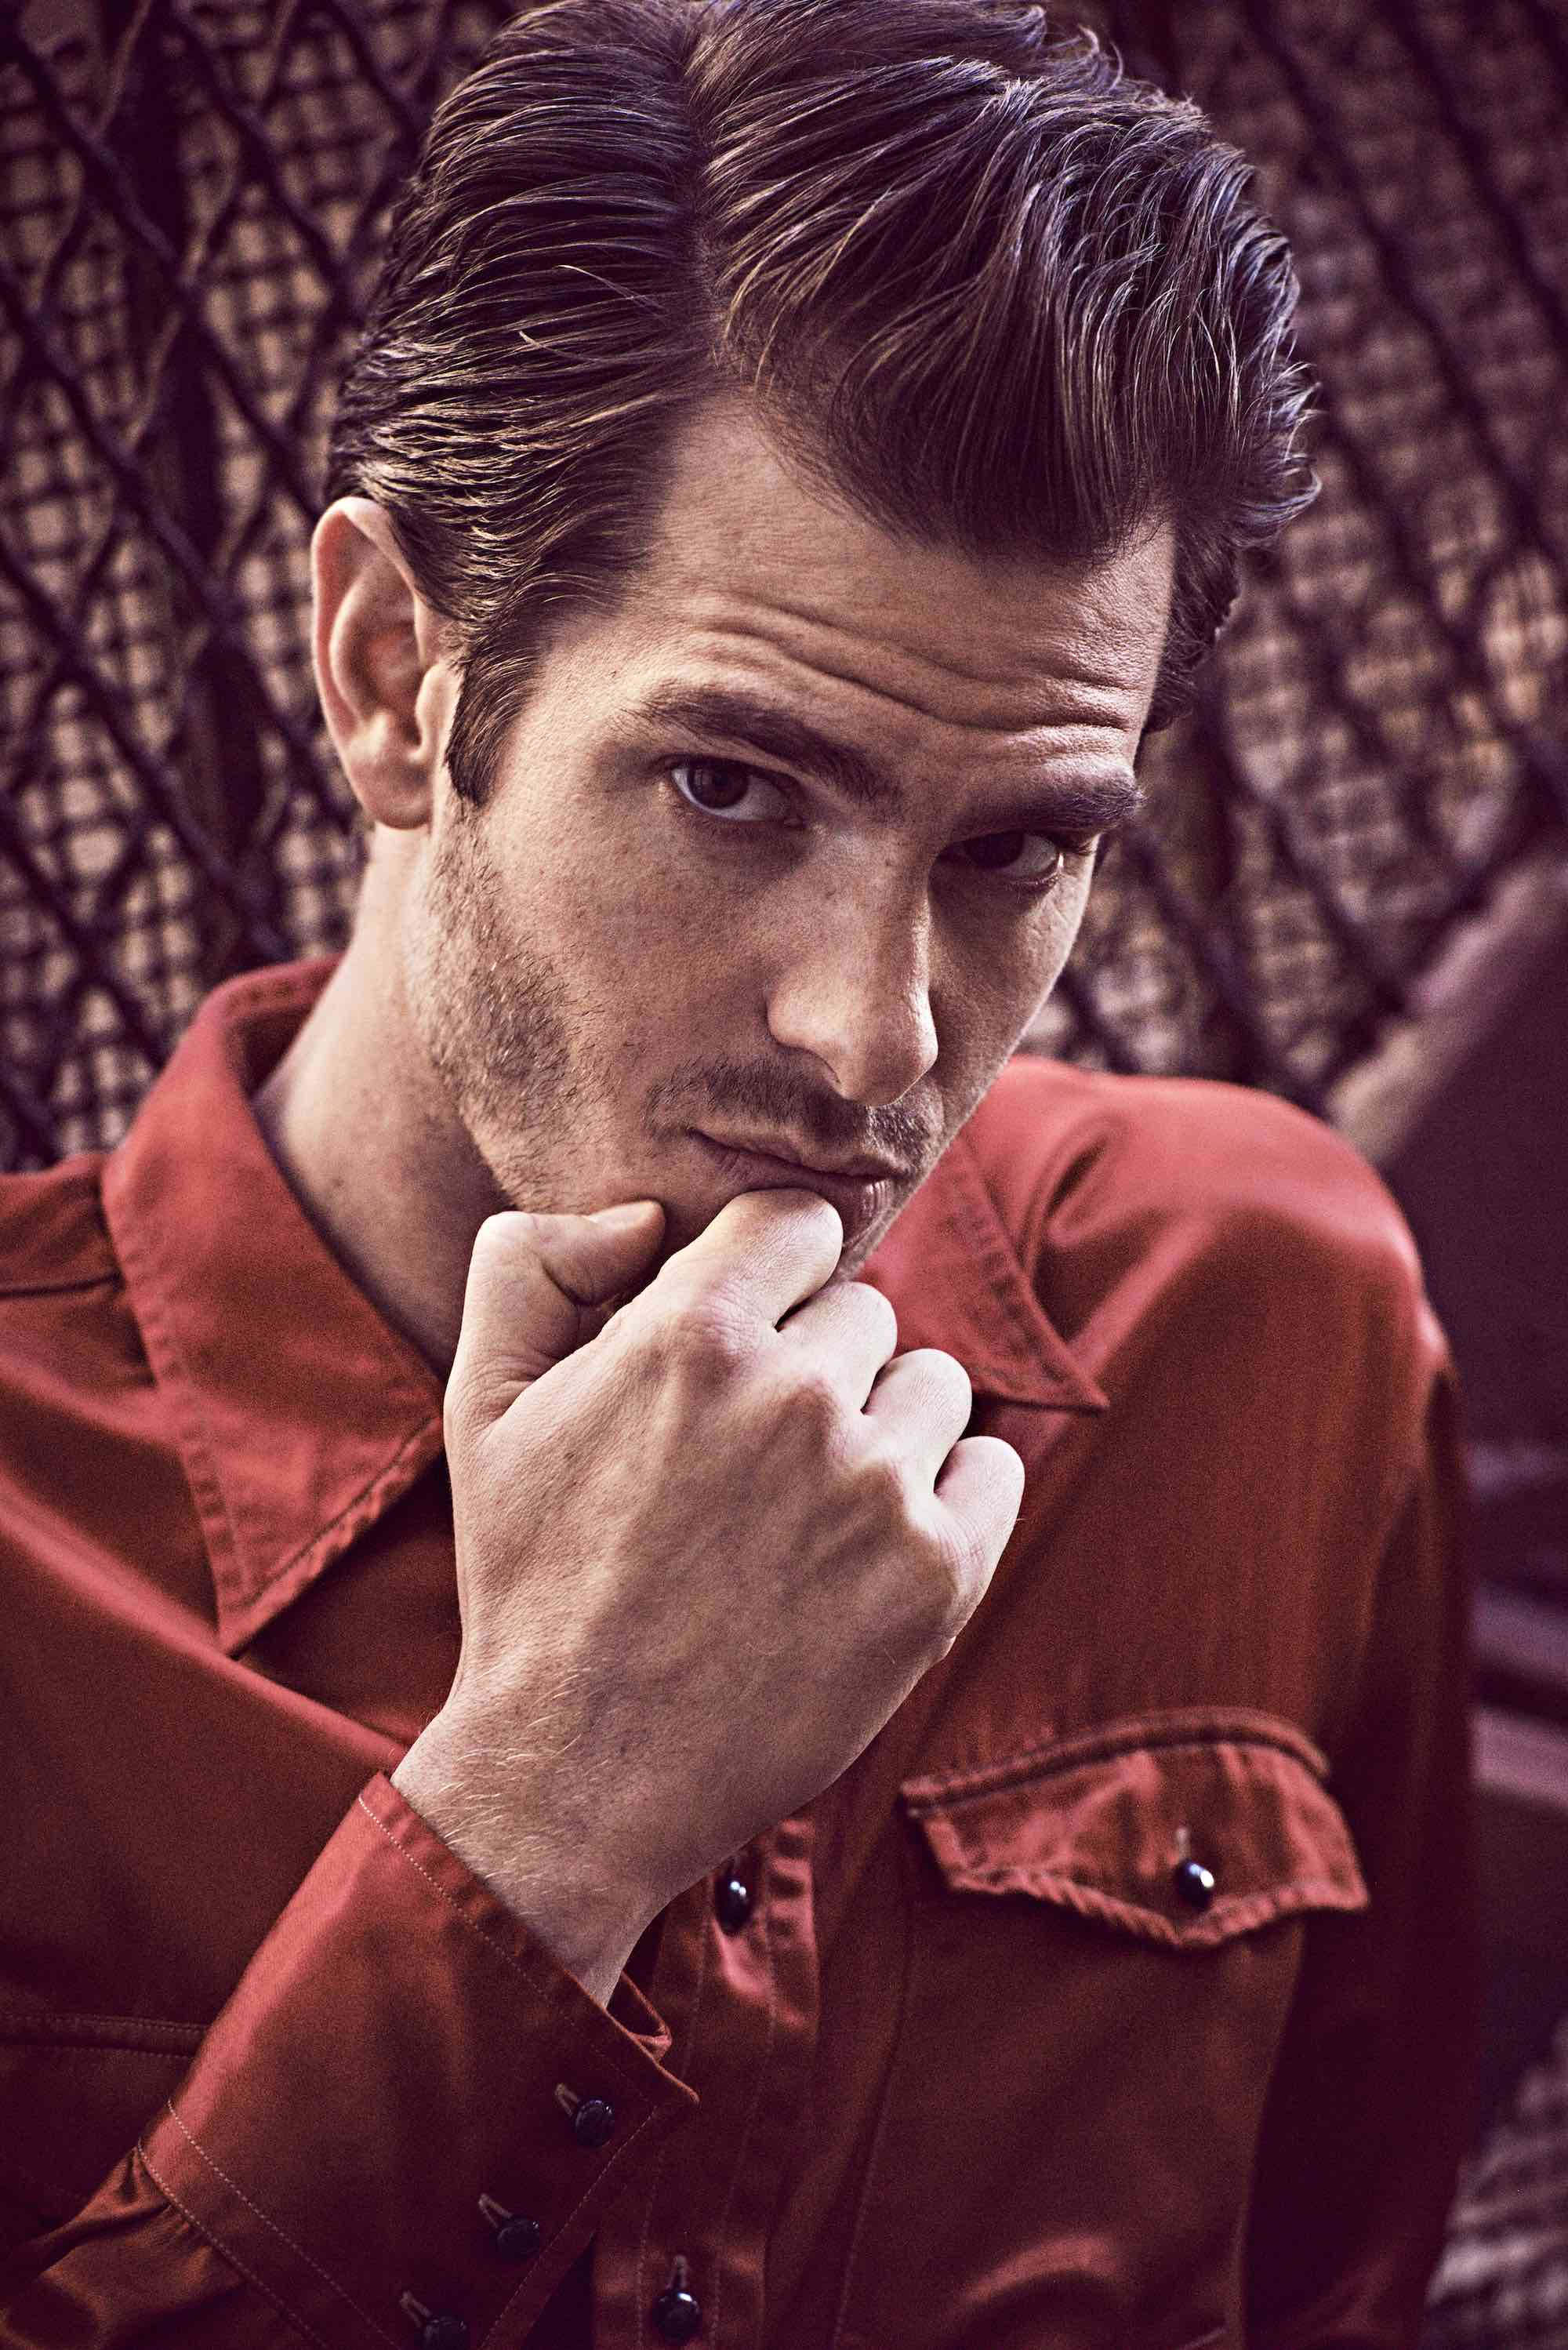 2017 11 Out Mag Andrew Garfield 05 0180 C 0